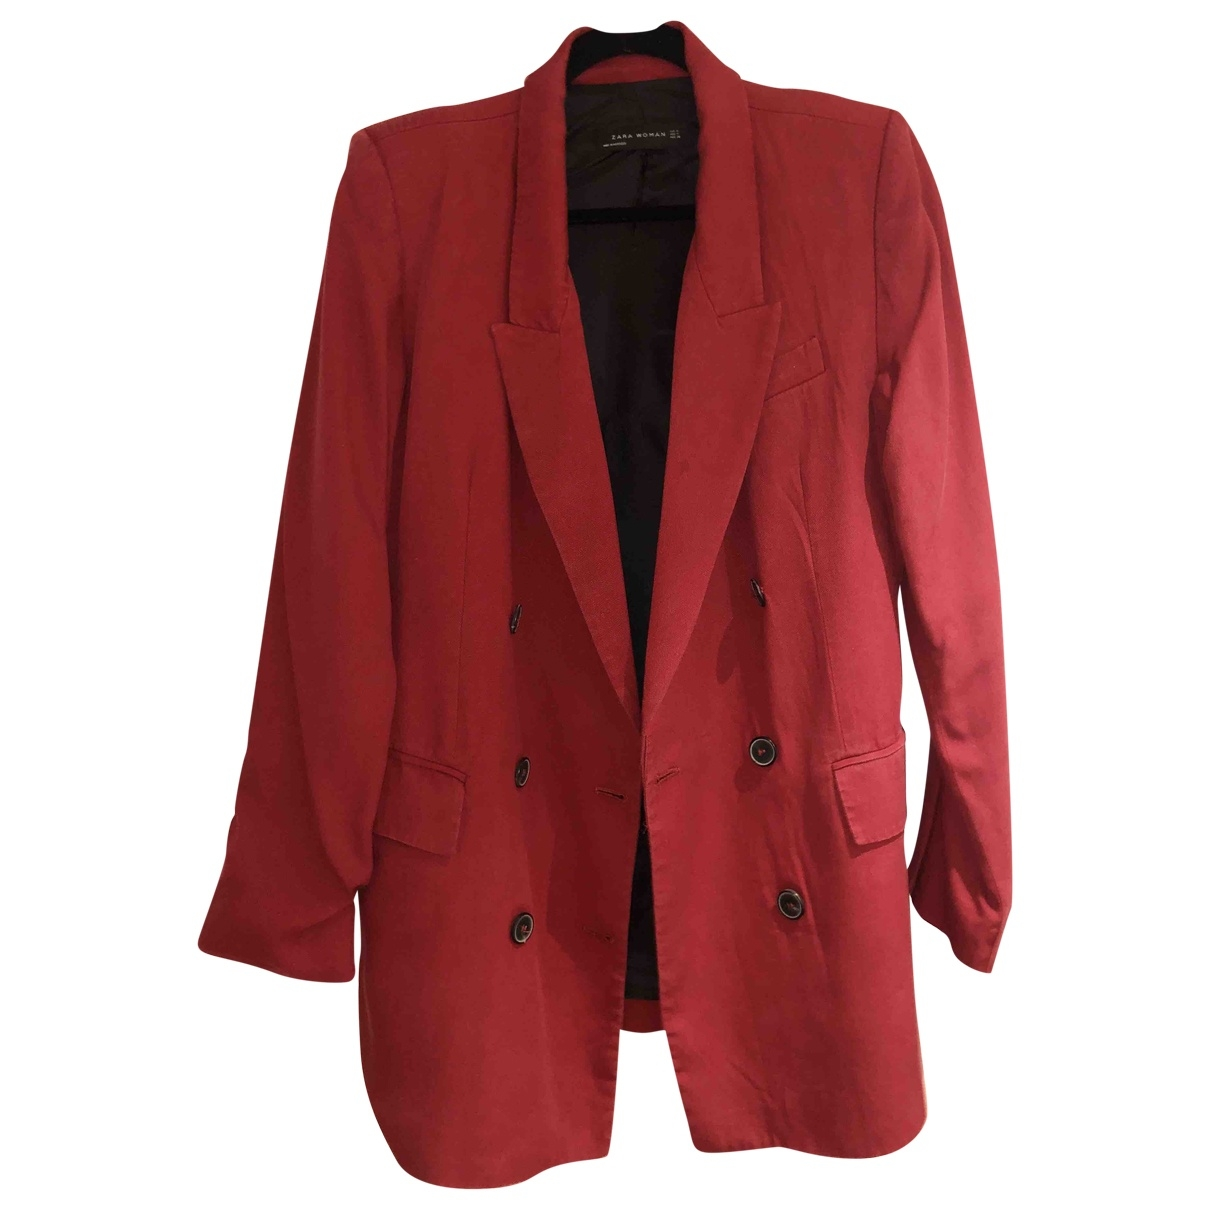 Zara \N Red Cotton jacket for Women M International